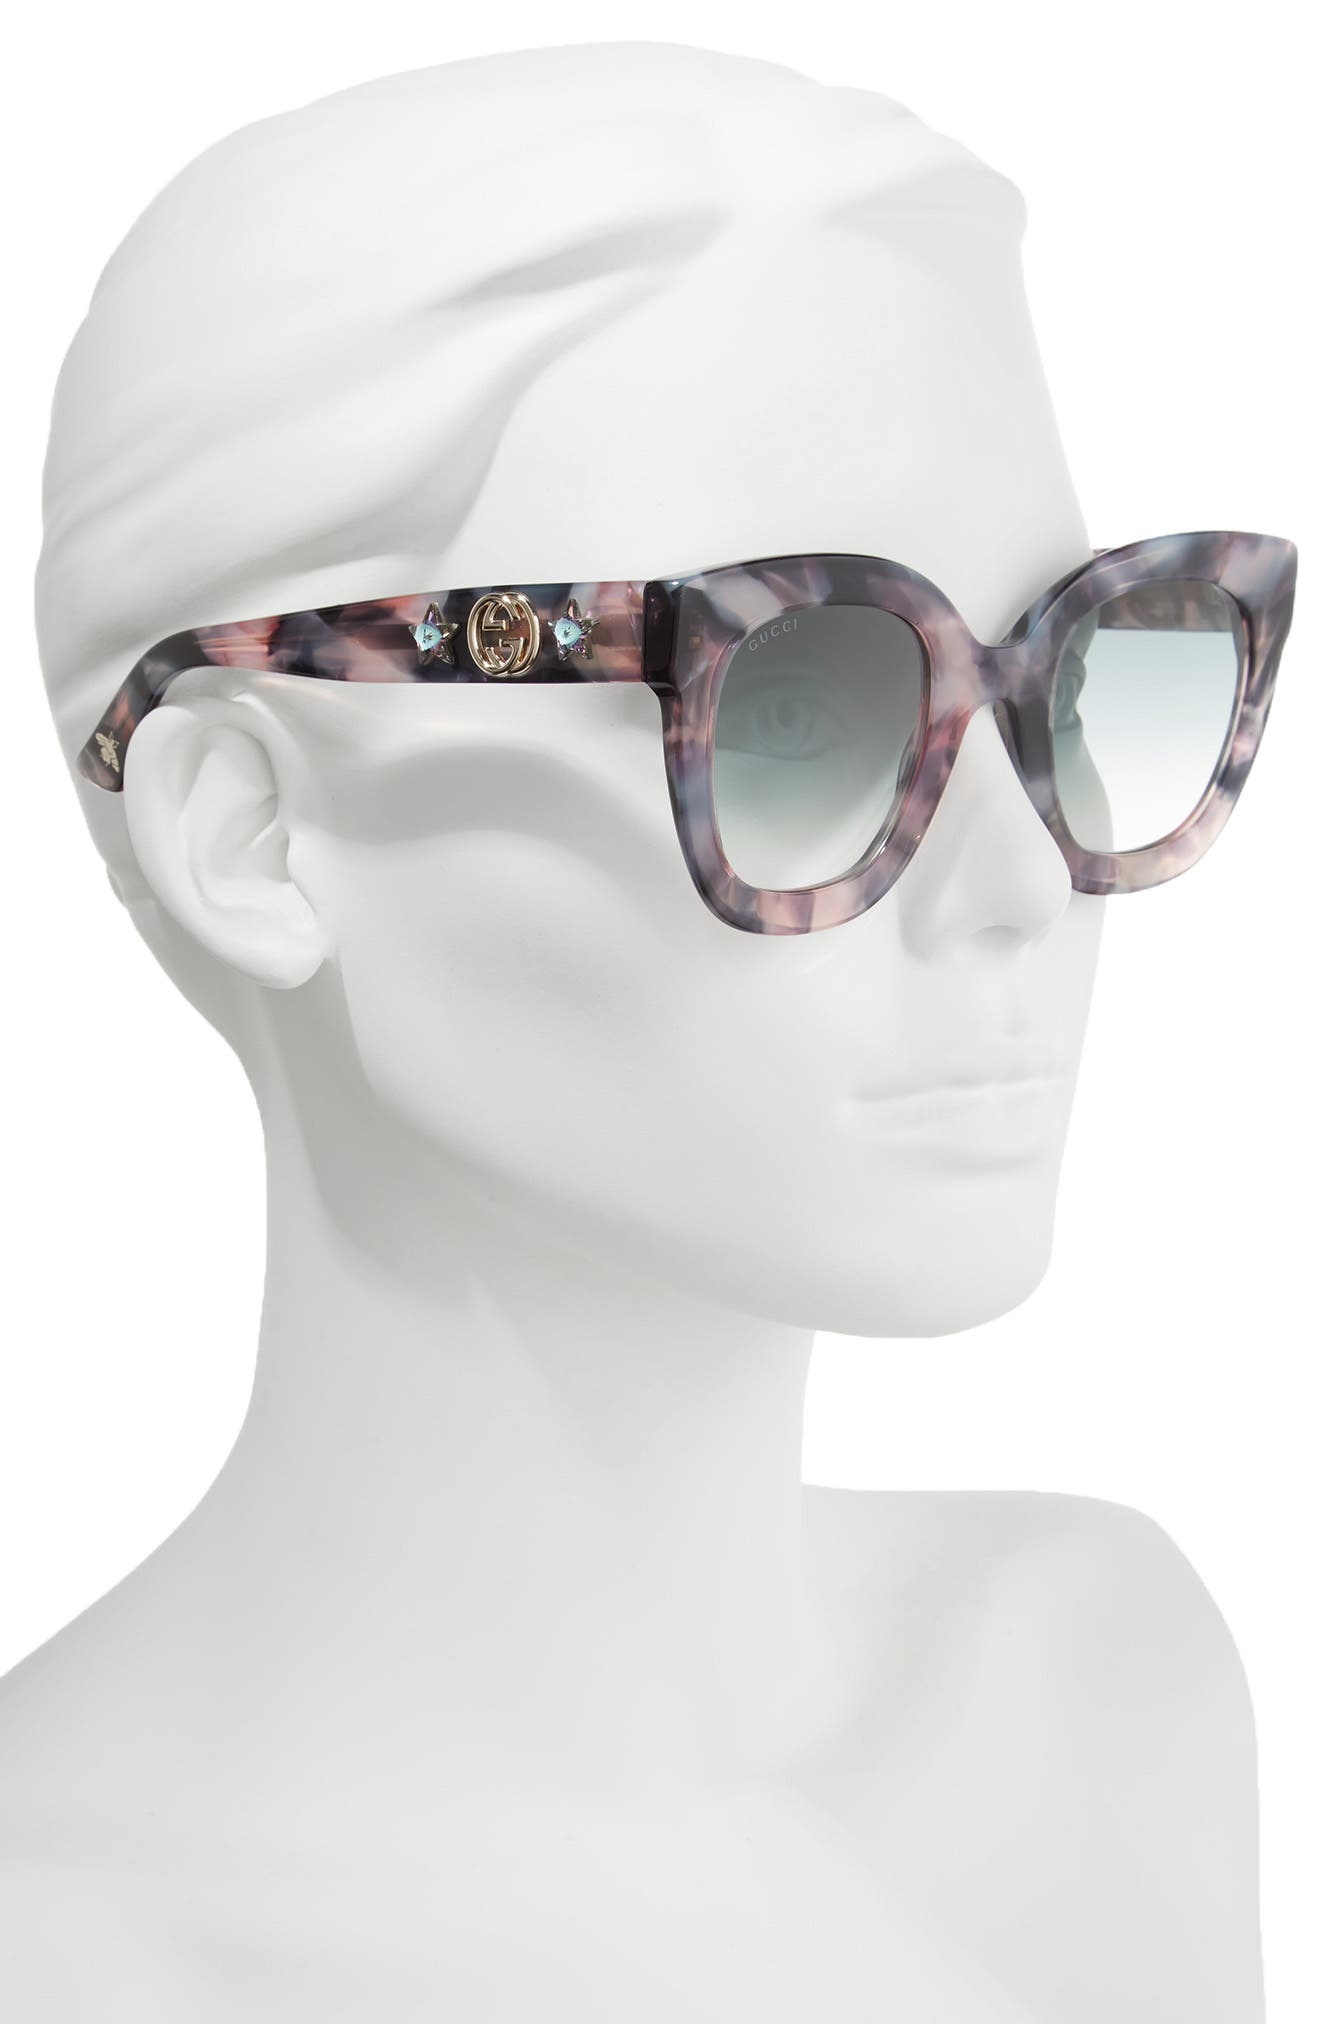 49mm Cat Eye Sunglasses,                             Alternate thumbnail 2, color,                             Havana